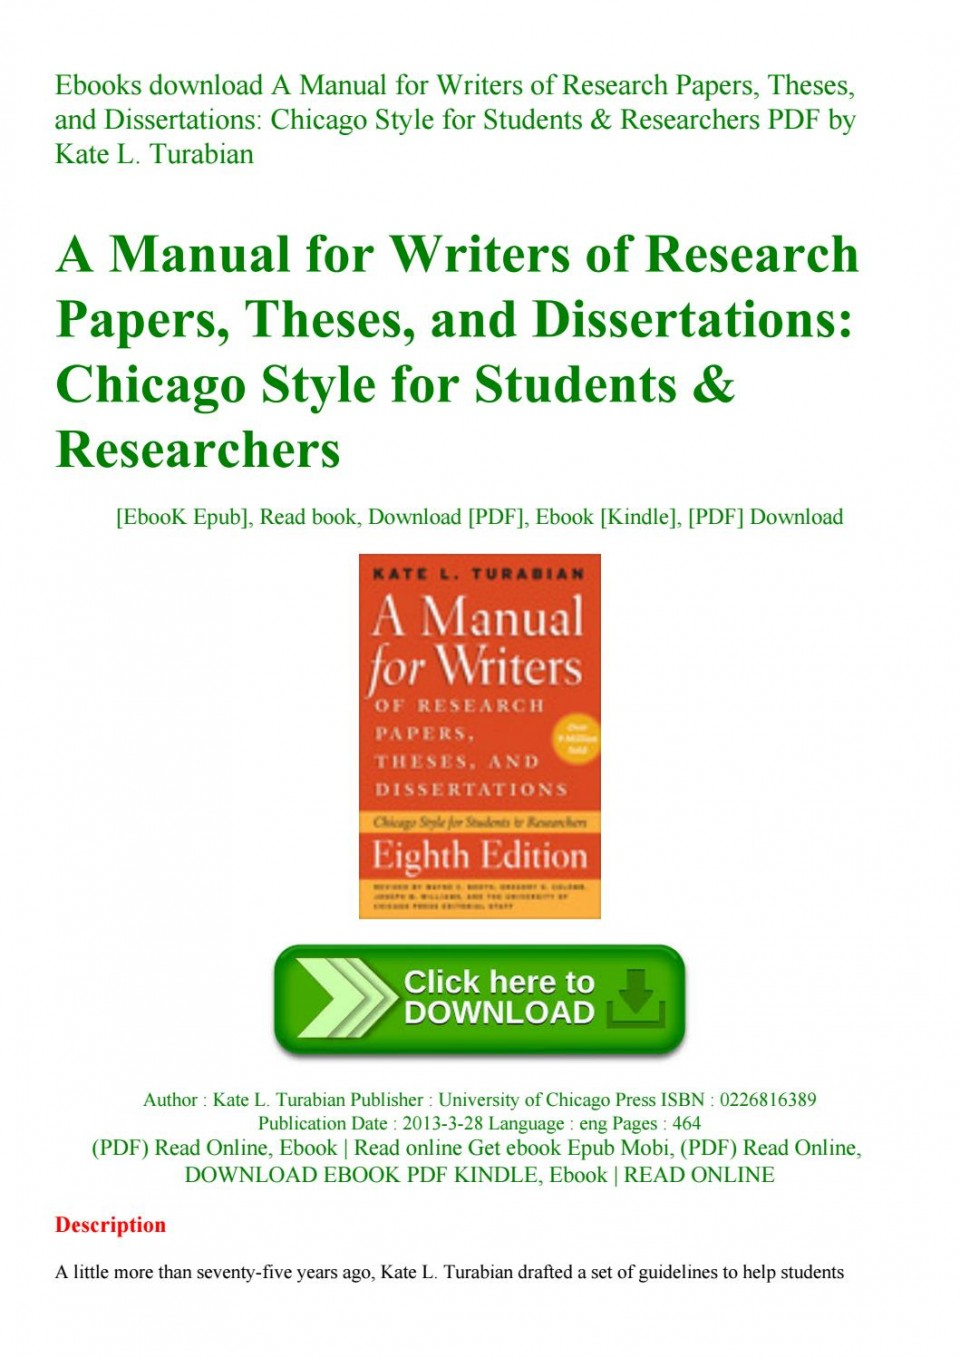 018 Page 1 Research Paper Manual For Writers Of Papers Theses And Sensational A Dissertations 8th Edition Pdf Eighth 960